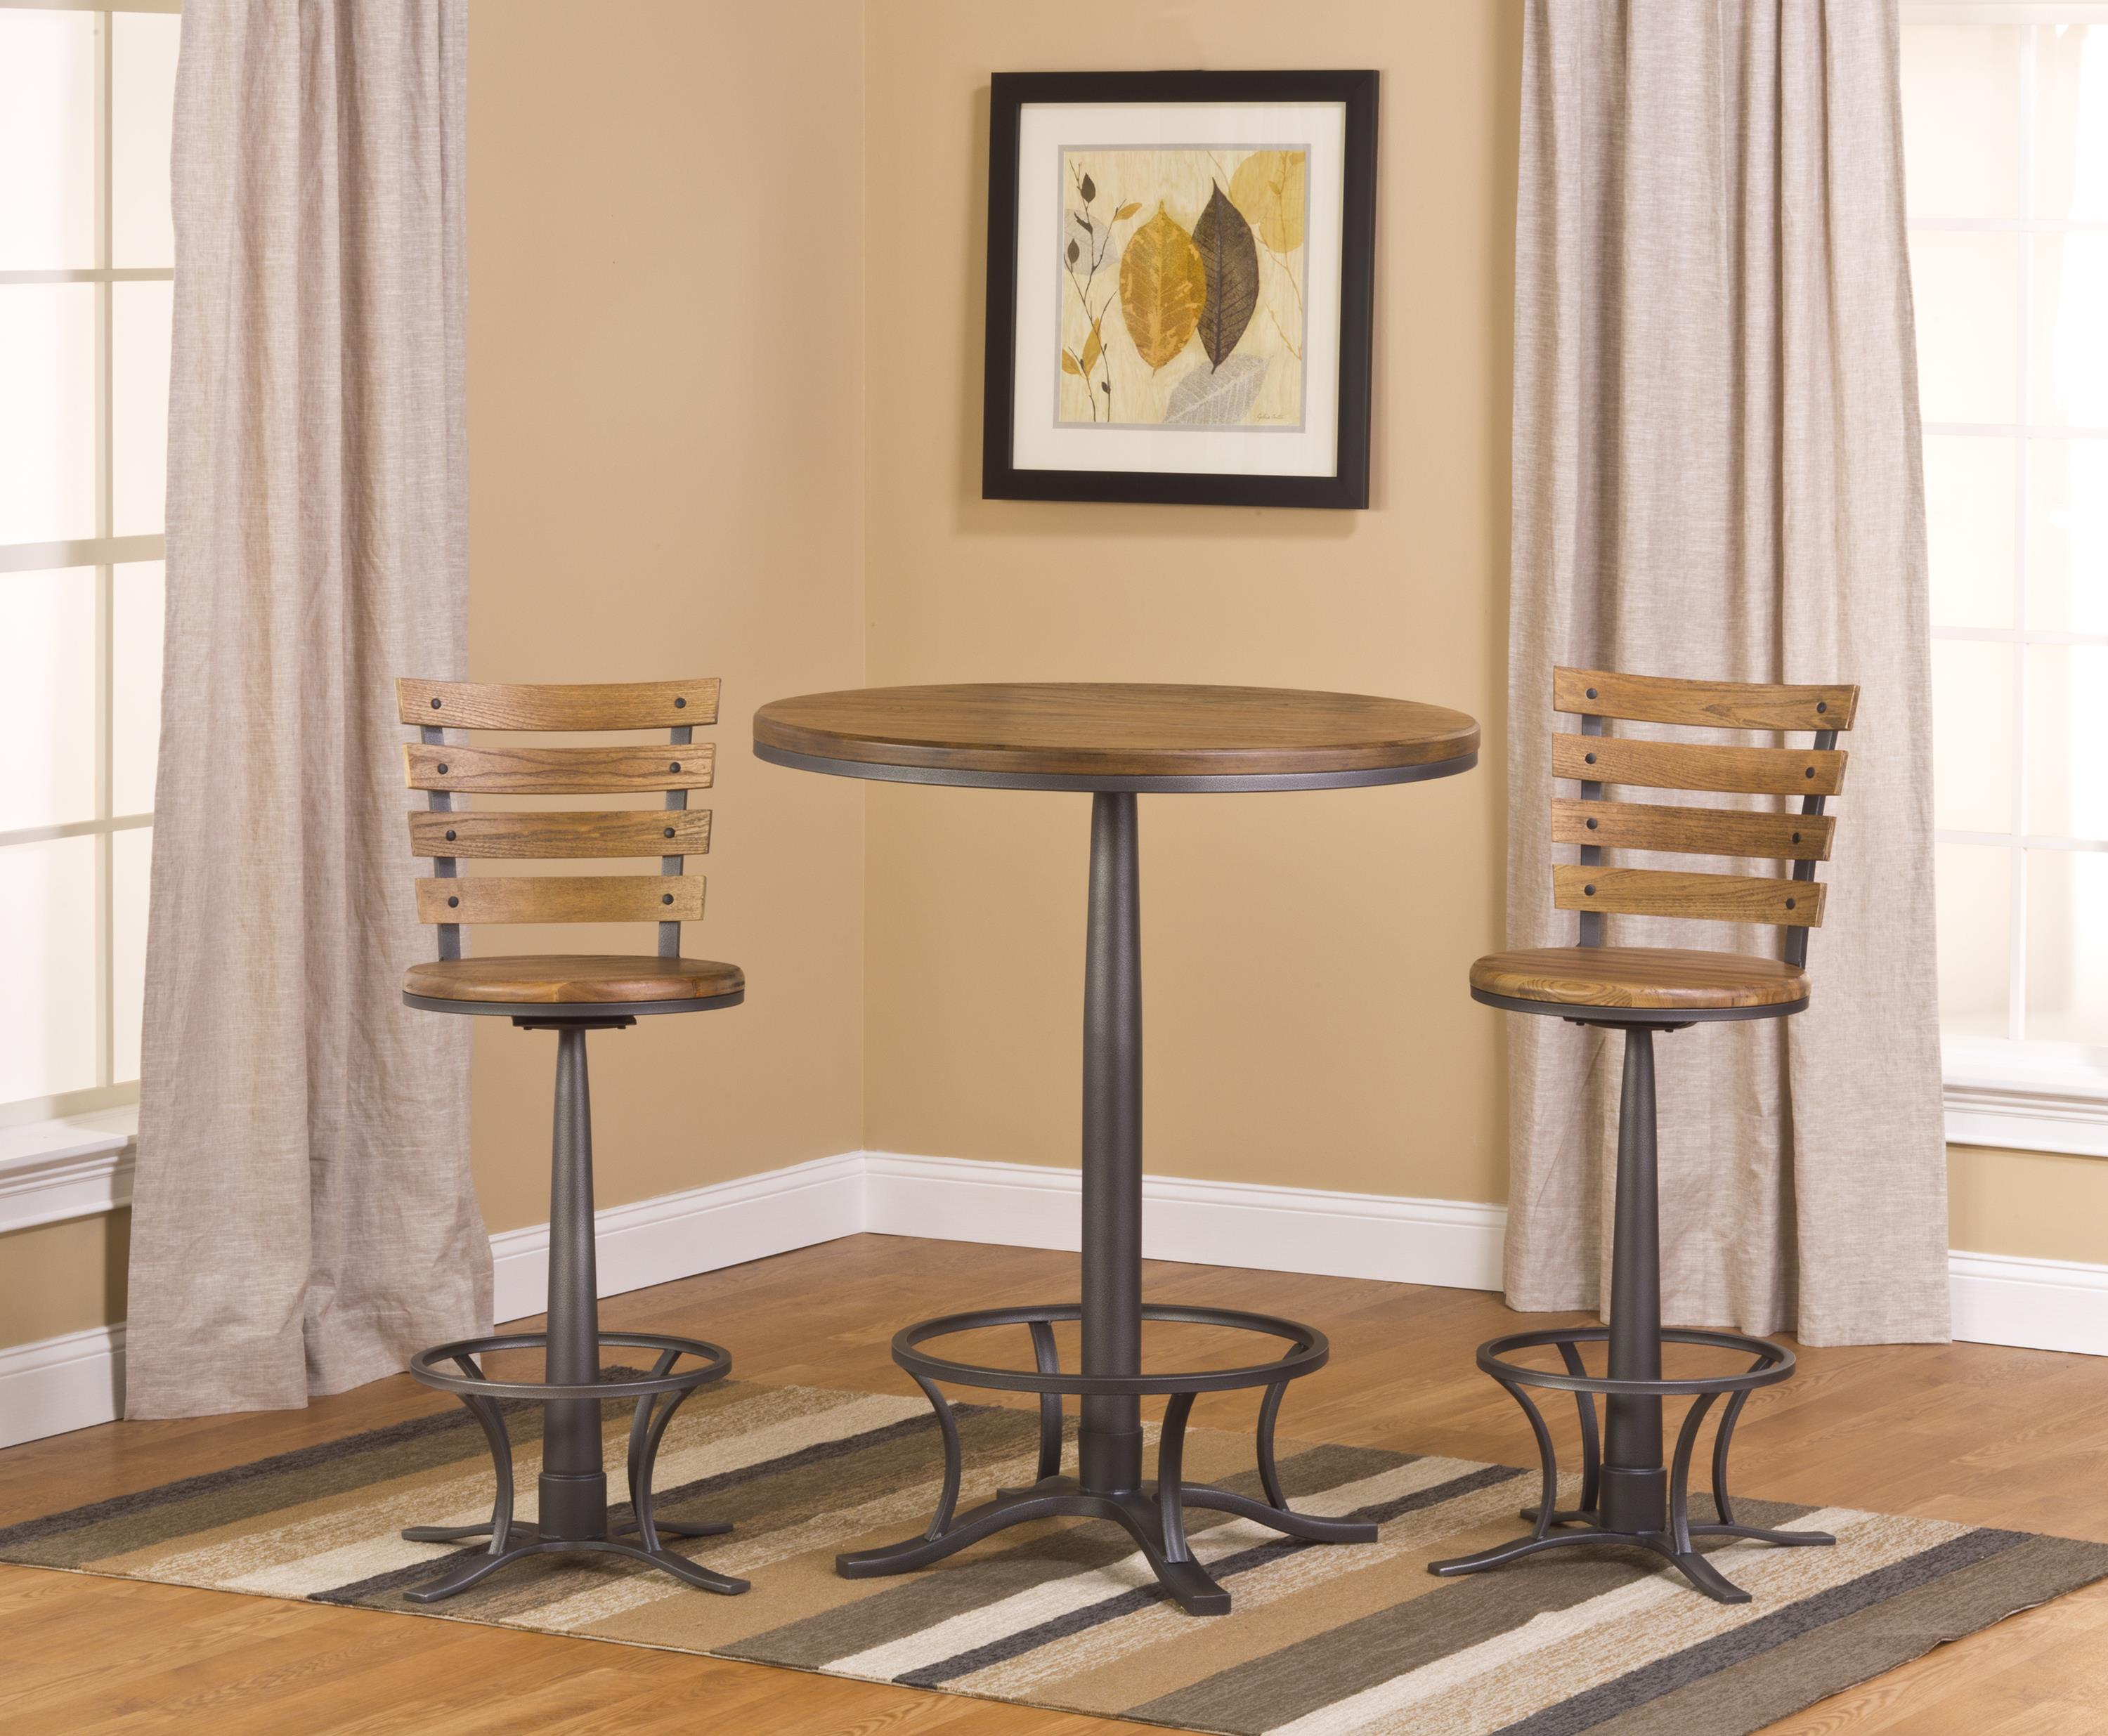 Hillsdale Westview 3-Piece Bistro Table and Bar Stool Set - Item Number: 5441PTBW